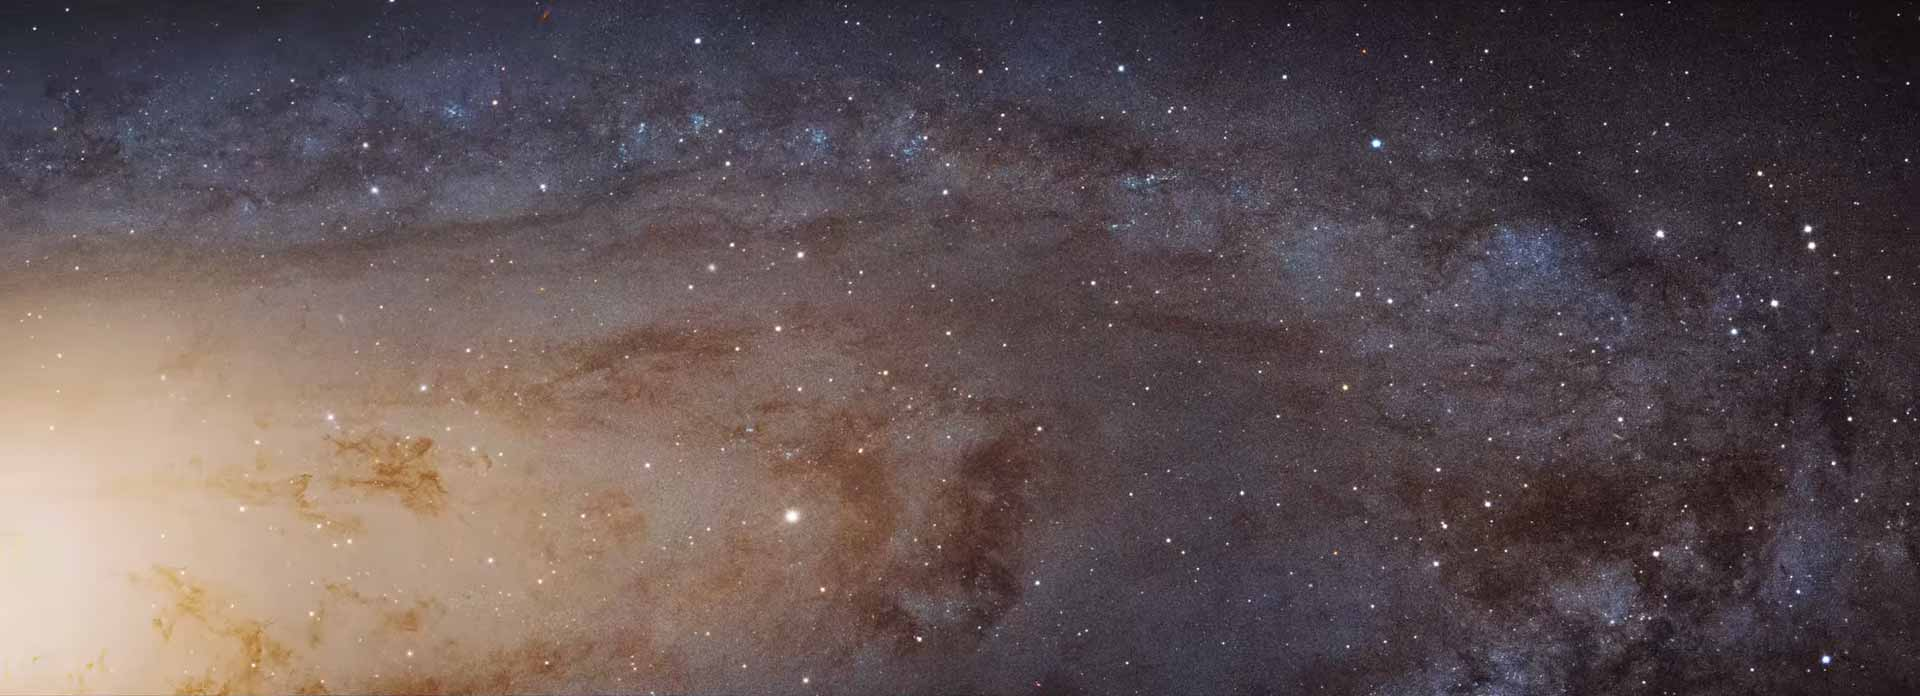 Hubble Images Super High Resolution Super-High Reso...